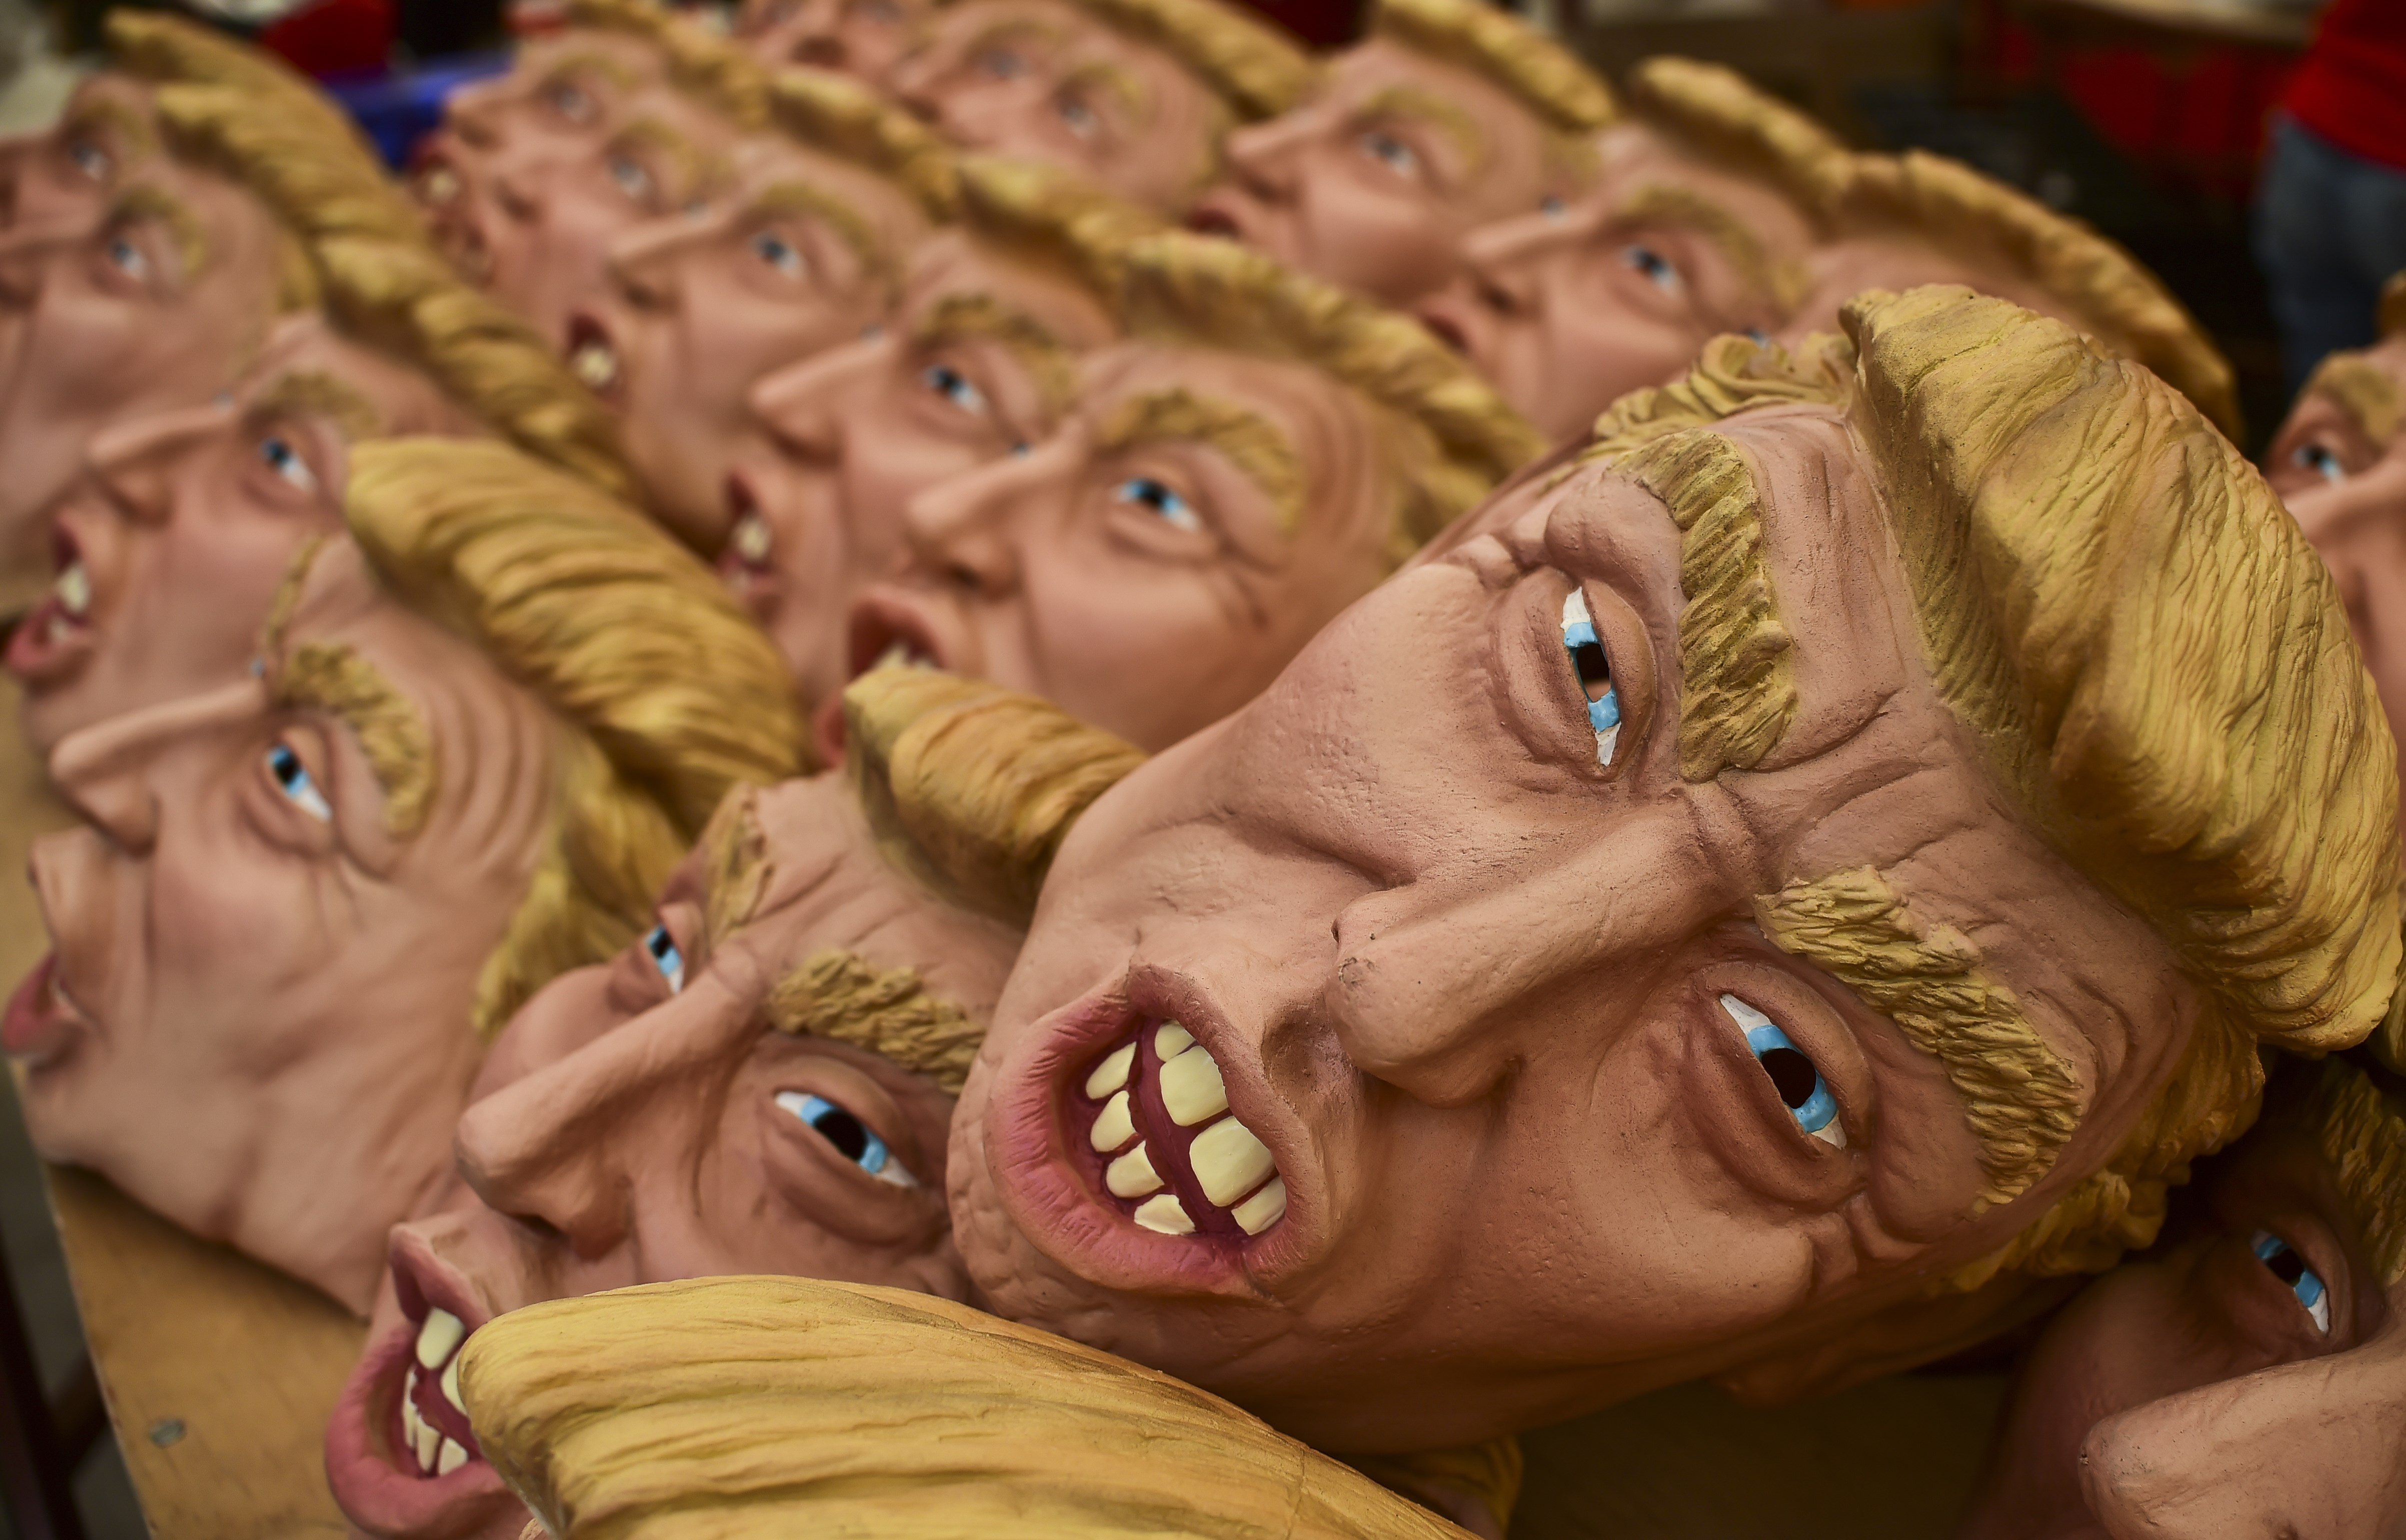 Masks representing Republican presidential candidate Donald Trump are pictured in a factory of costumes and masks, on Oct. 16, 2015, in Jiutepec, Morelos State.